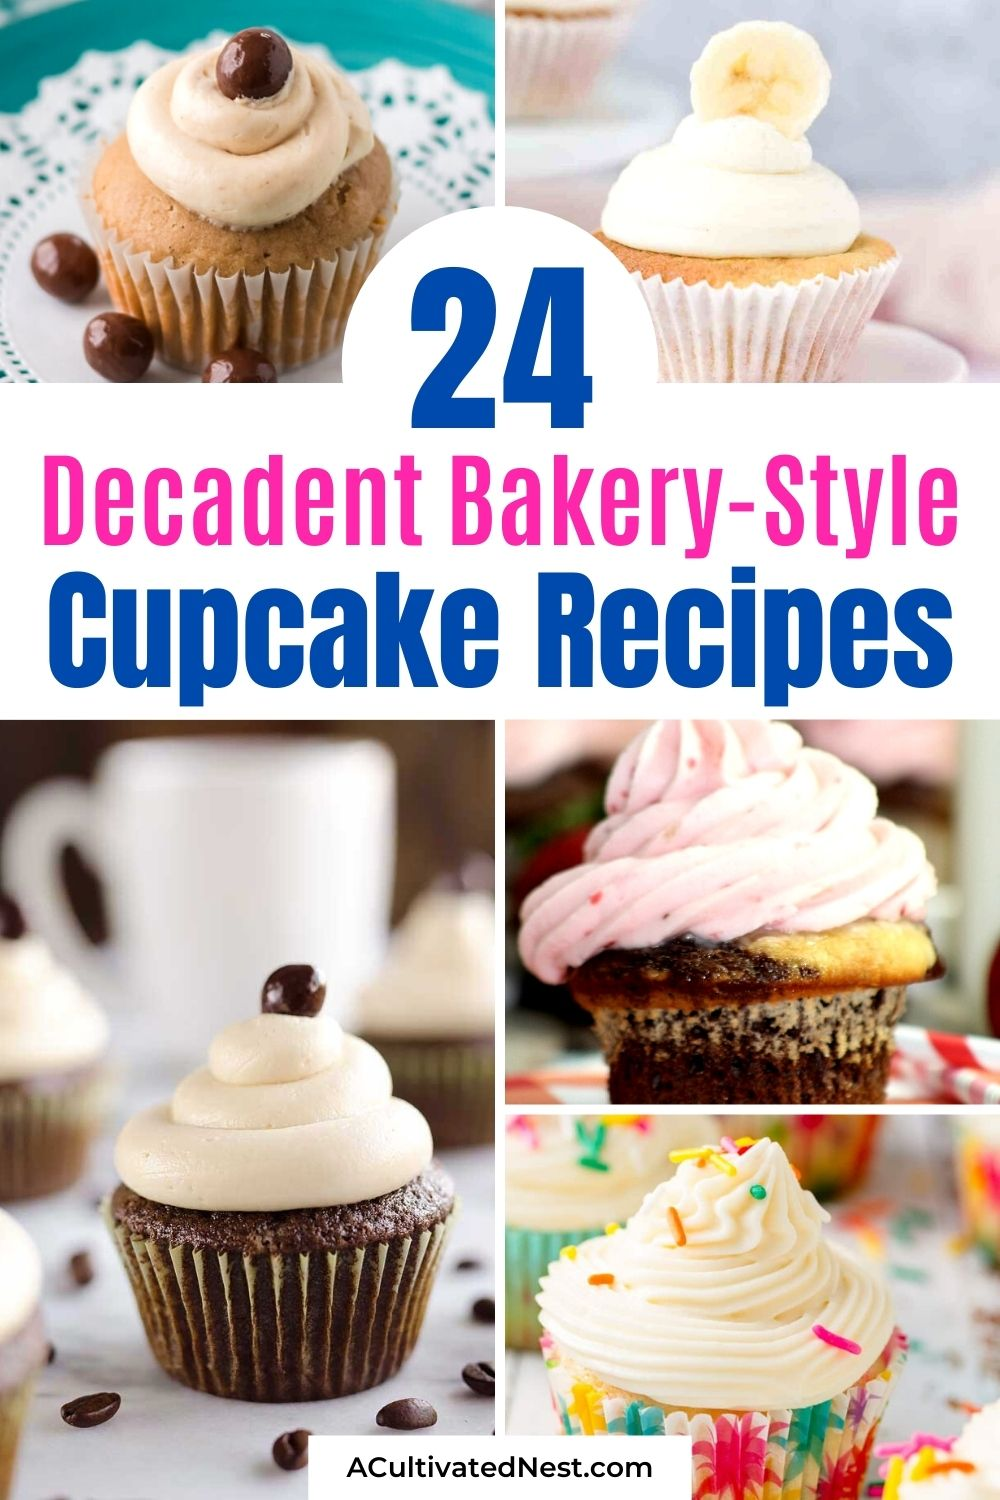 24 Delicious Cupcake Recipes- For some delicious bakery-style cupcakes at home, check out these delicious cupcake recipes! There are so many tasty flavors to choose from, and they're so easy to make! | #cupcakes #bakingRecipes #dessert #dessertRecipes #ACultivatedNest